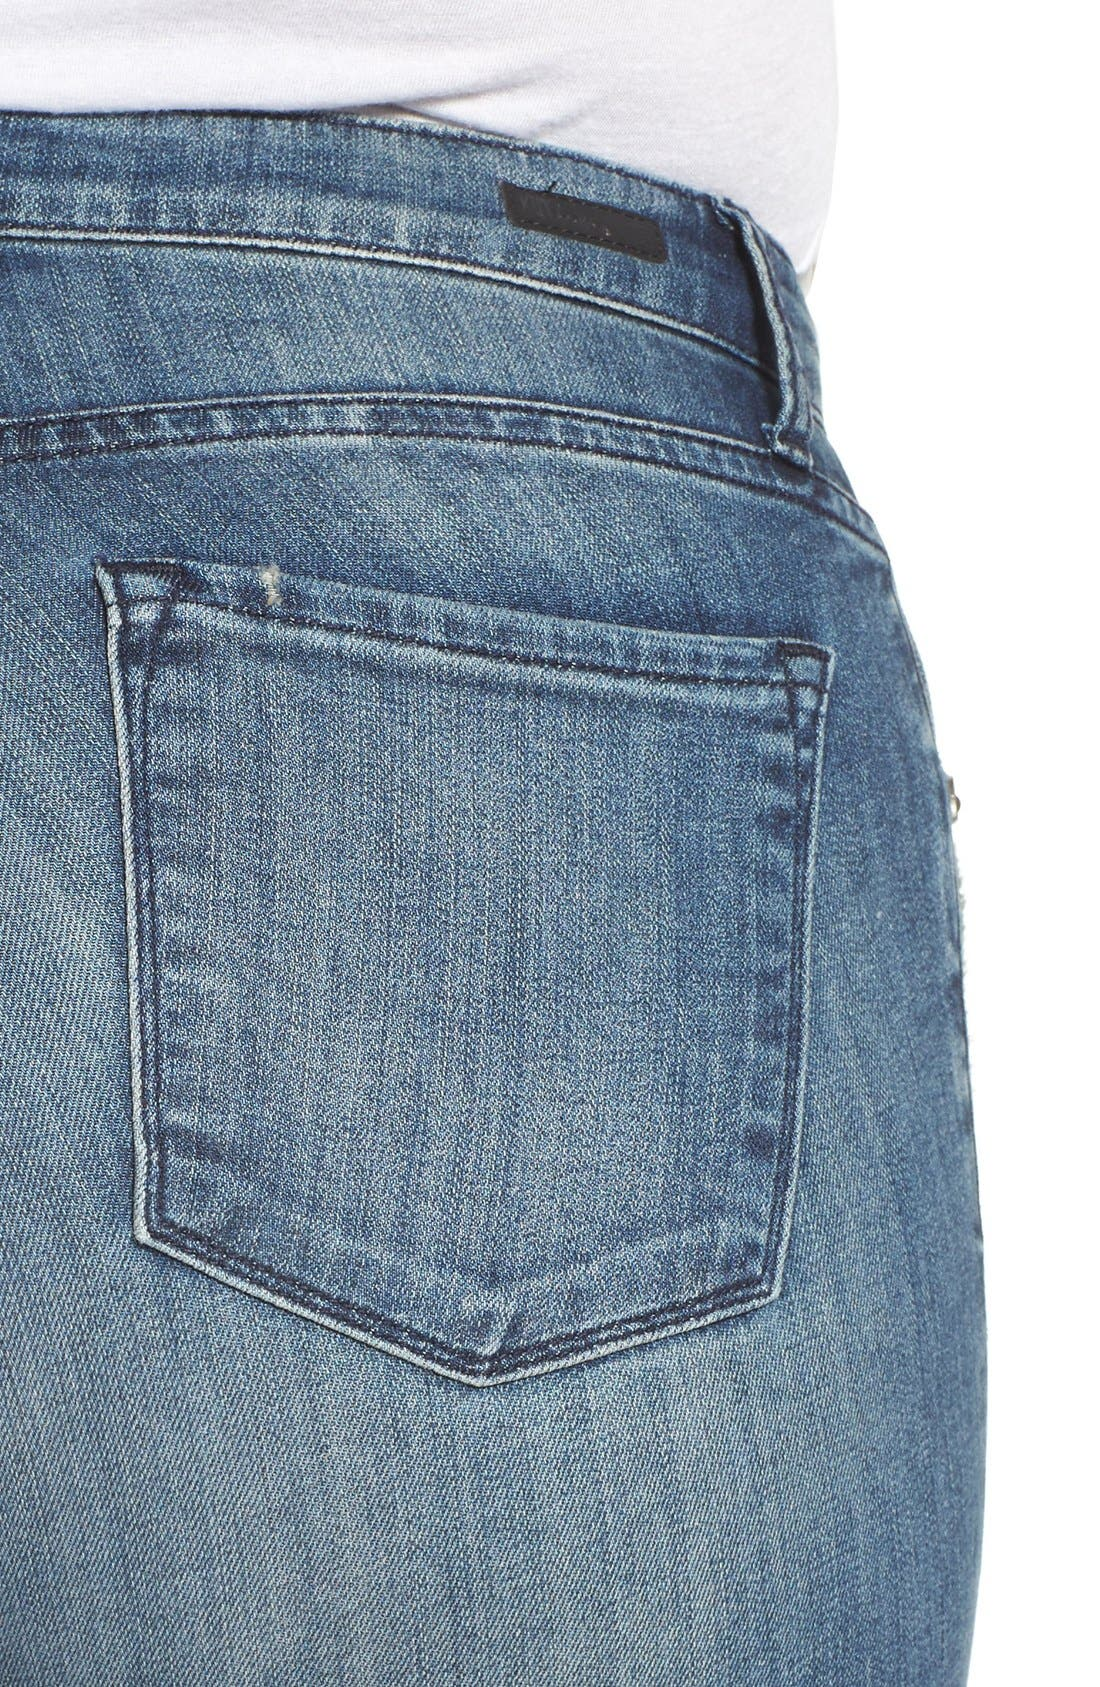 'Reese' Crop Flare Leg Jeans,                             Alternate thumbnail 2, color,                             PERFECTION